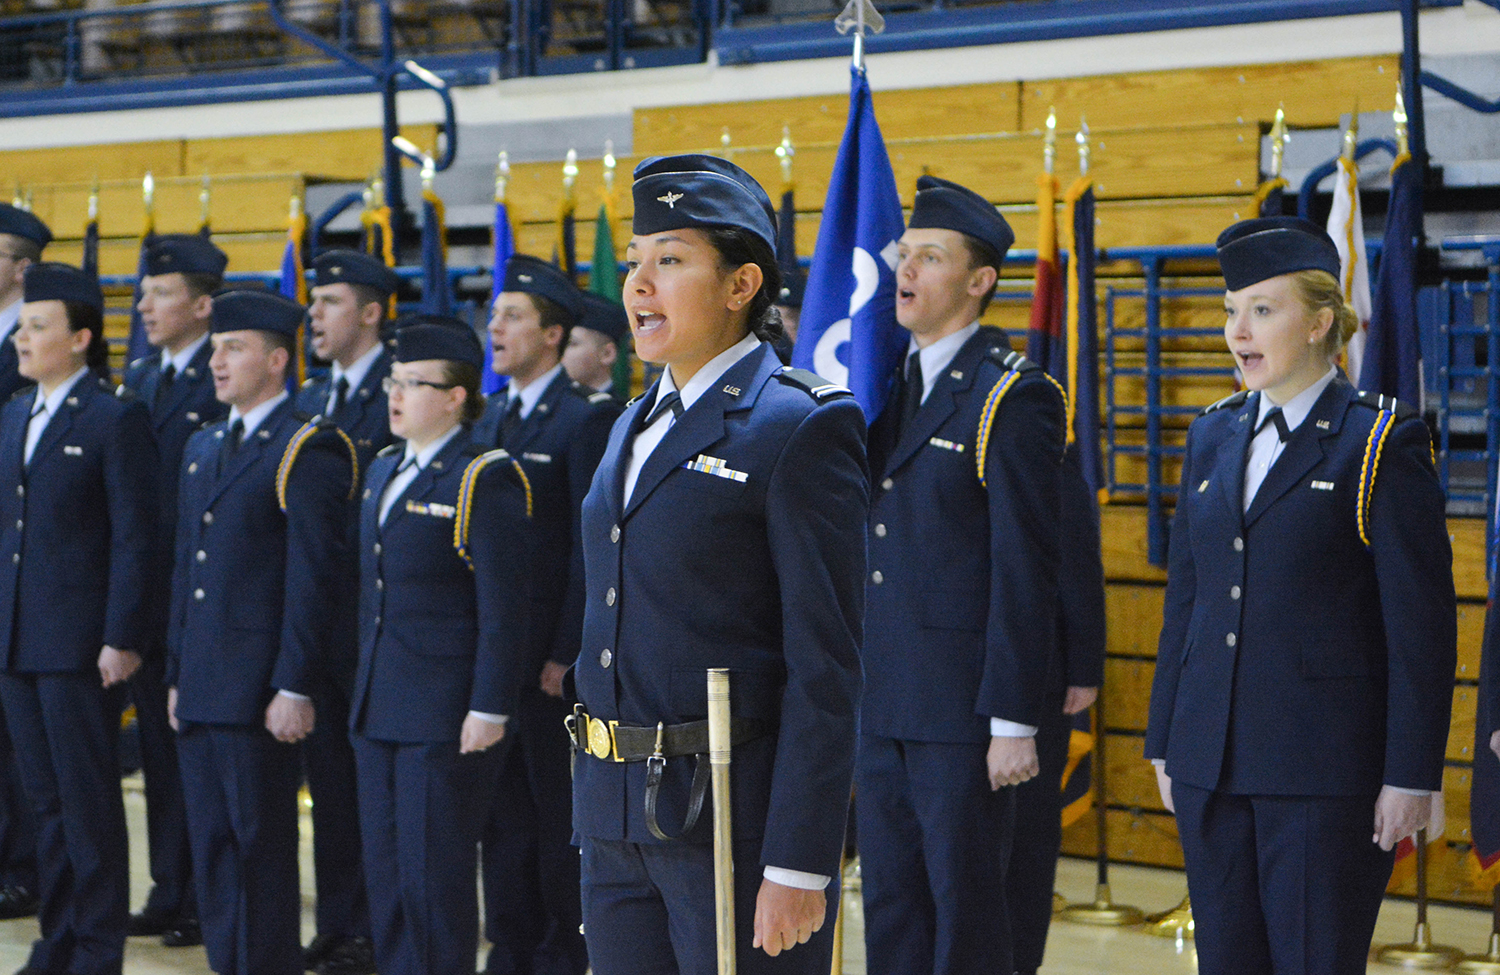 ROTC students sing during ceremony.